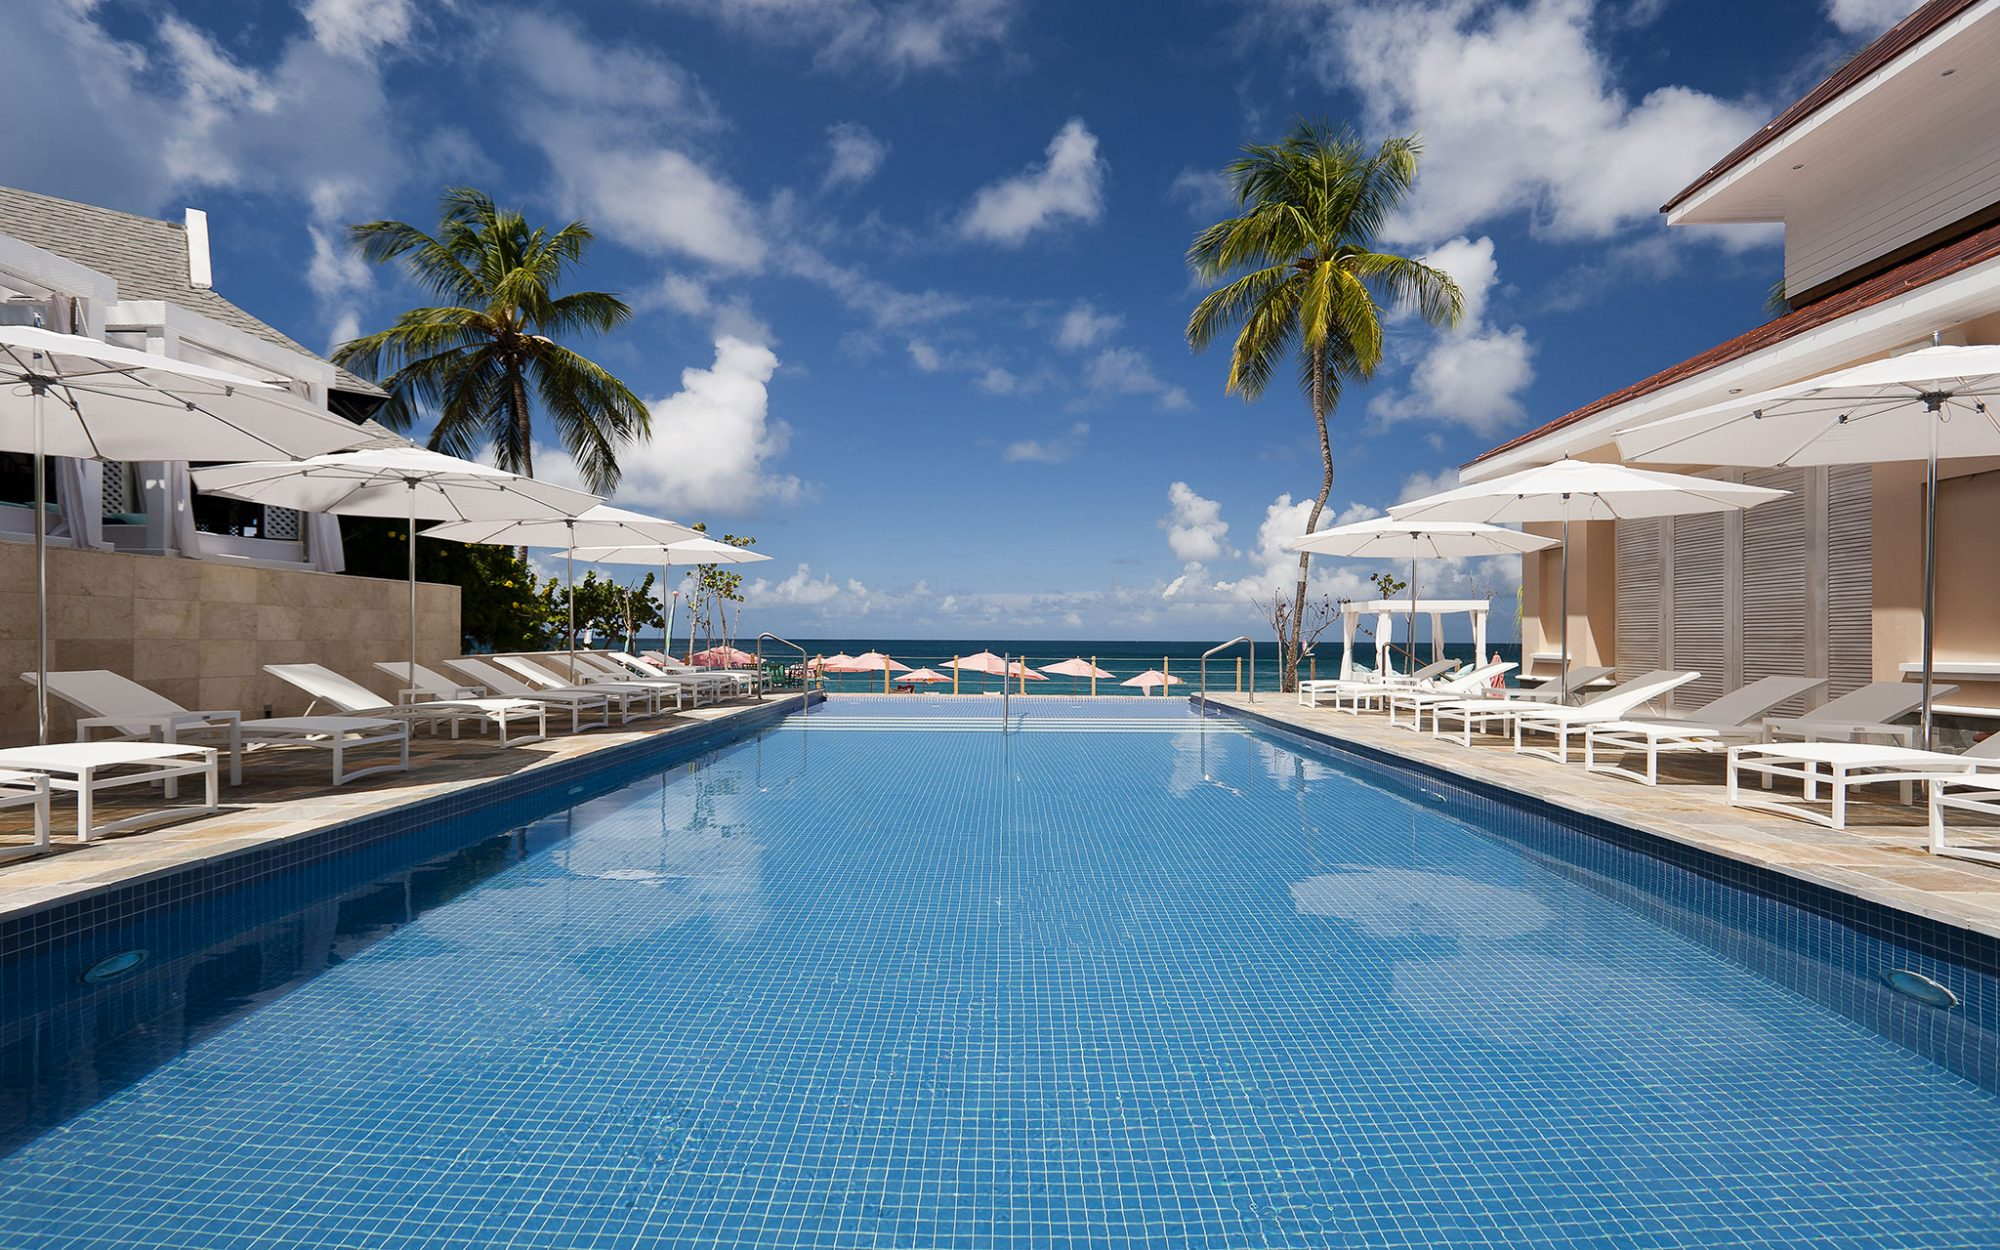 Destination Spas to Jump-Start Your Year: The BodyHoliday, St. Lucia